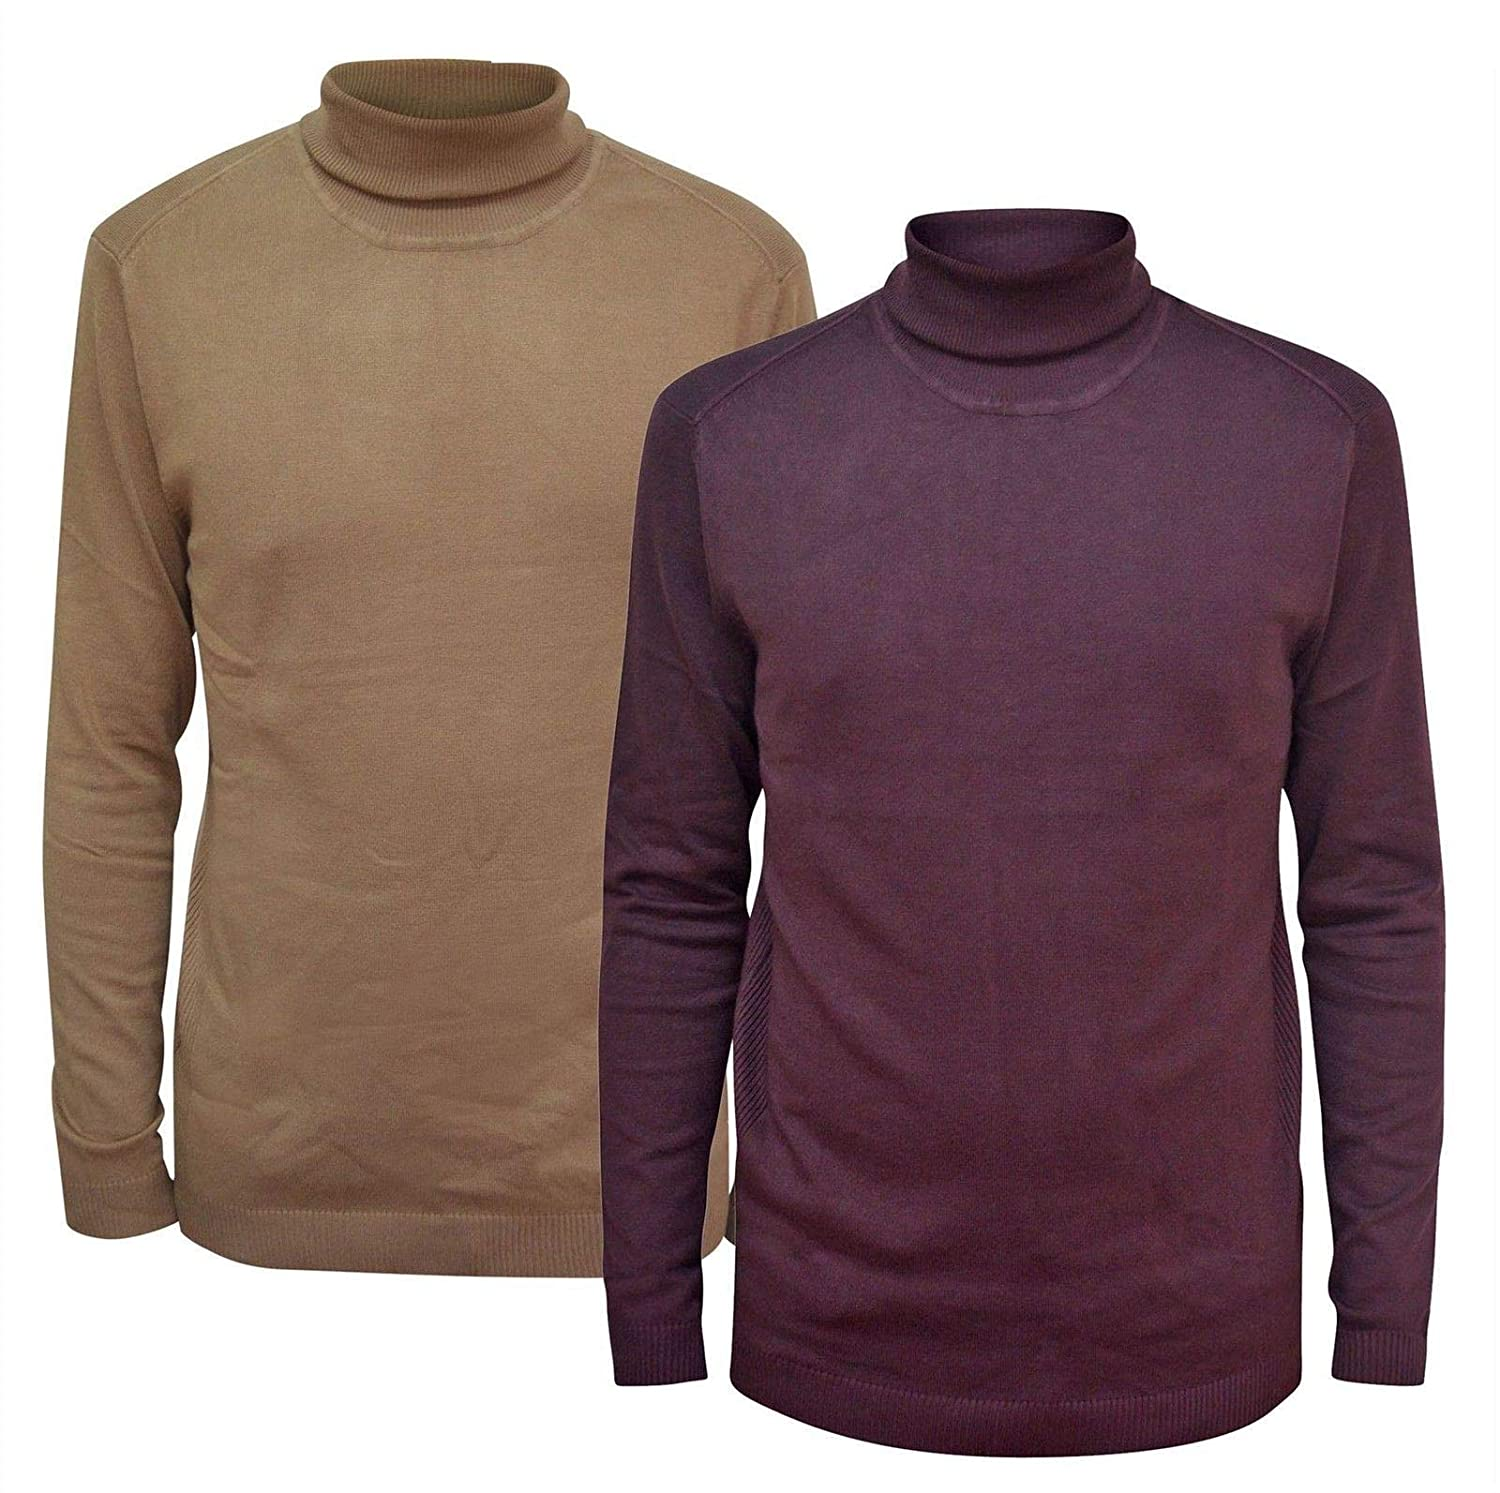 cf27a87c9b0e49 Mens Rib Trim Roll Neck Jumper: Amazon.co.uk: Clothing